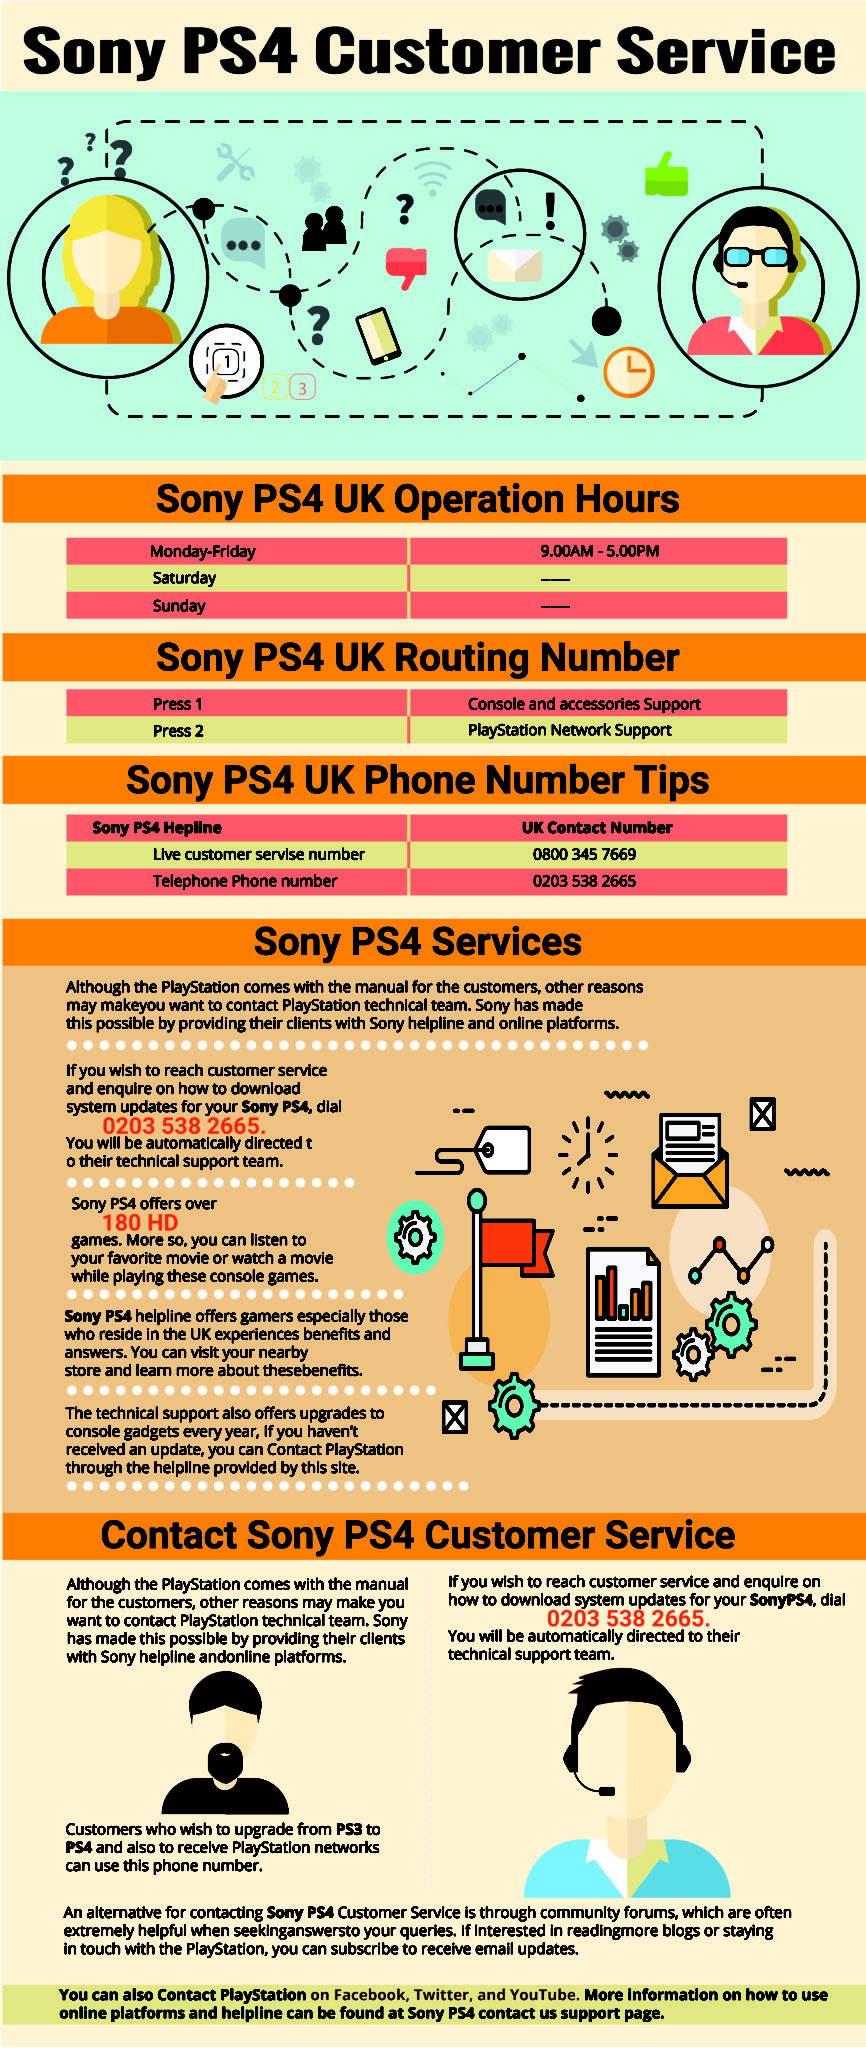 Sony PS4 Helpline